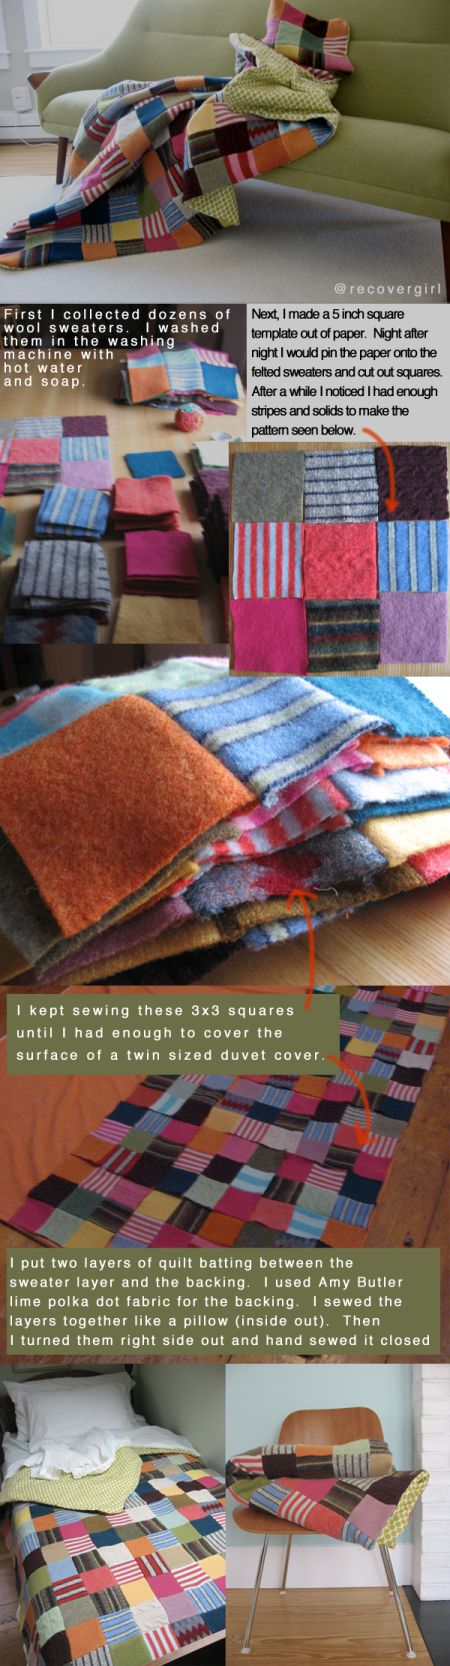 felted sweater blanket diy ... http://recovergirl.wordpress.com/2012/01/15/felted-sweater-blanket/#